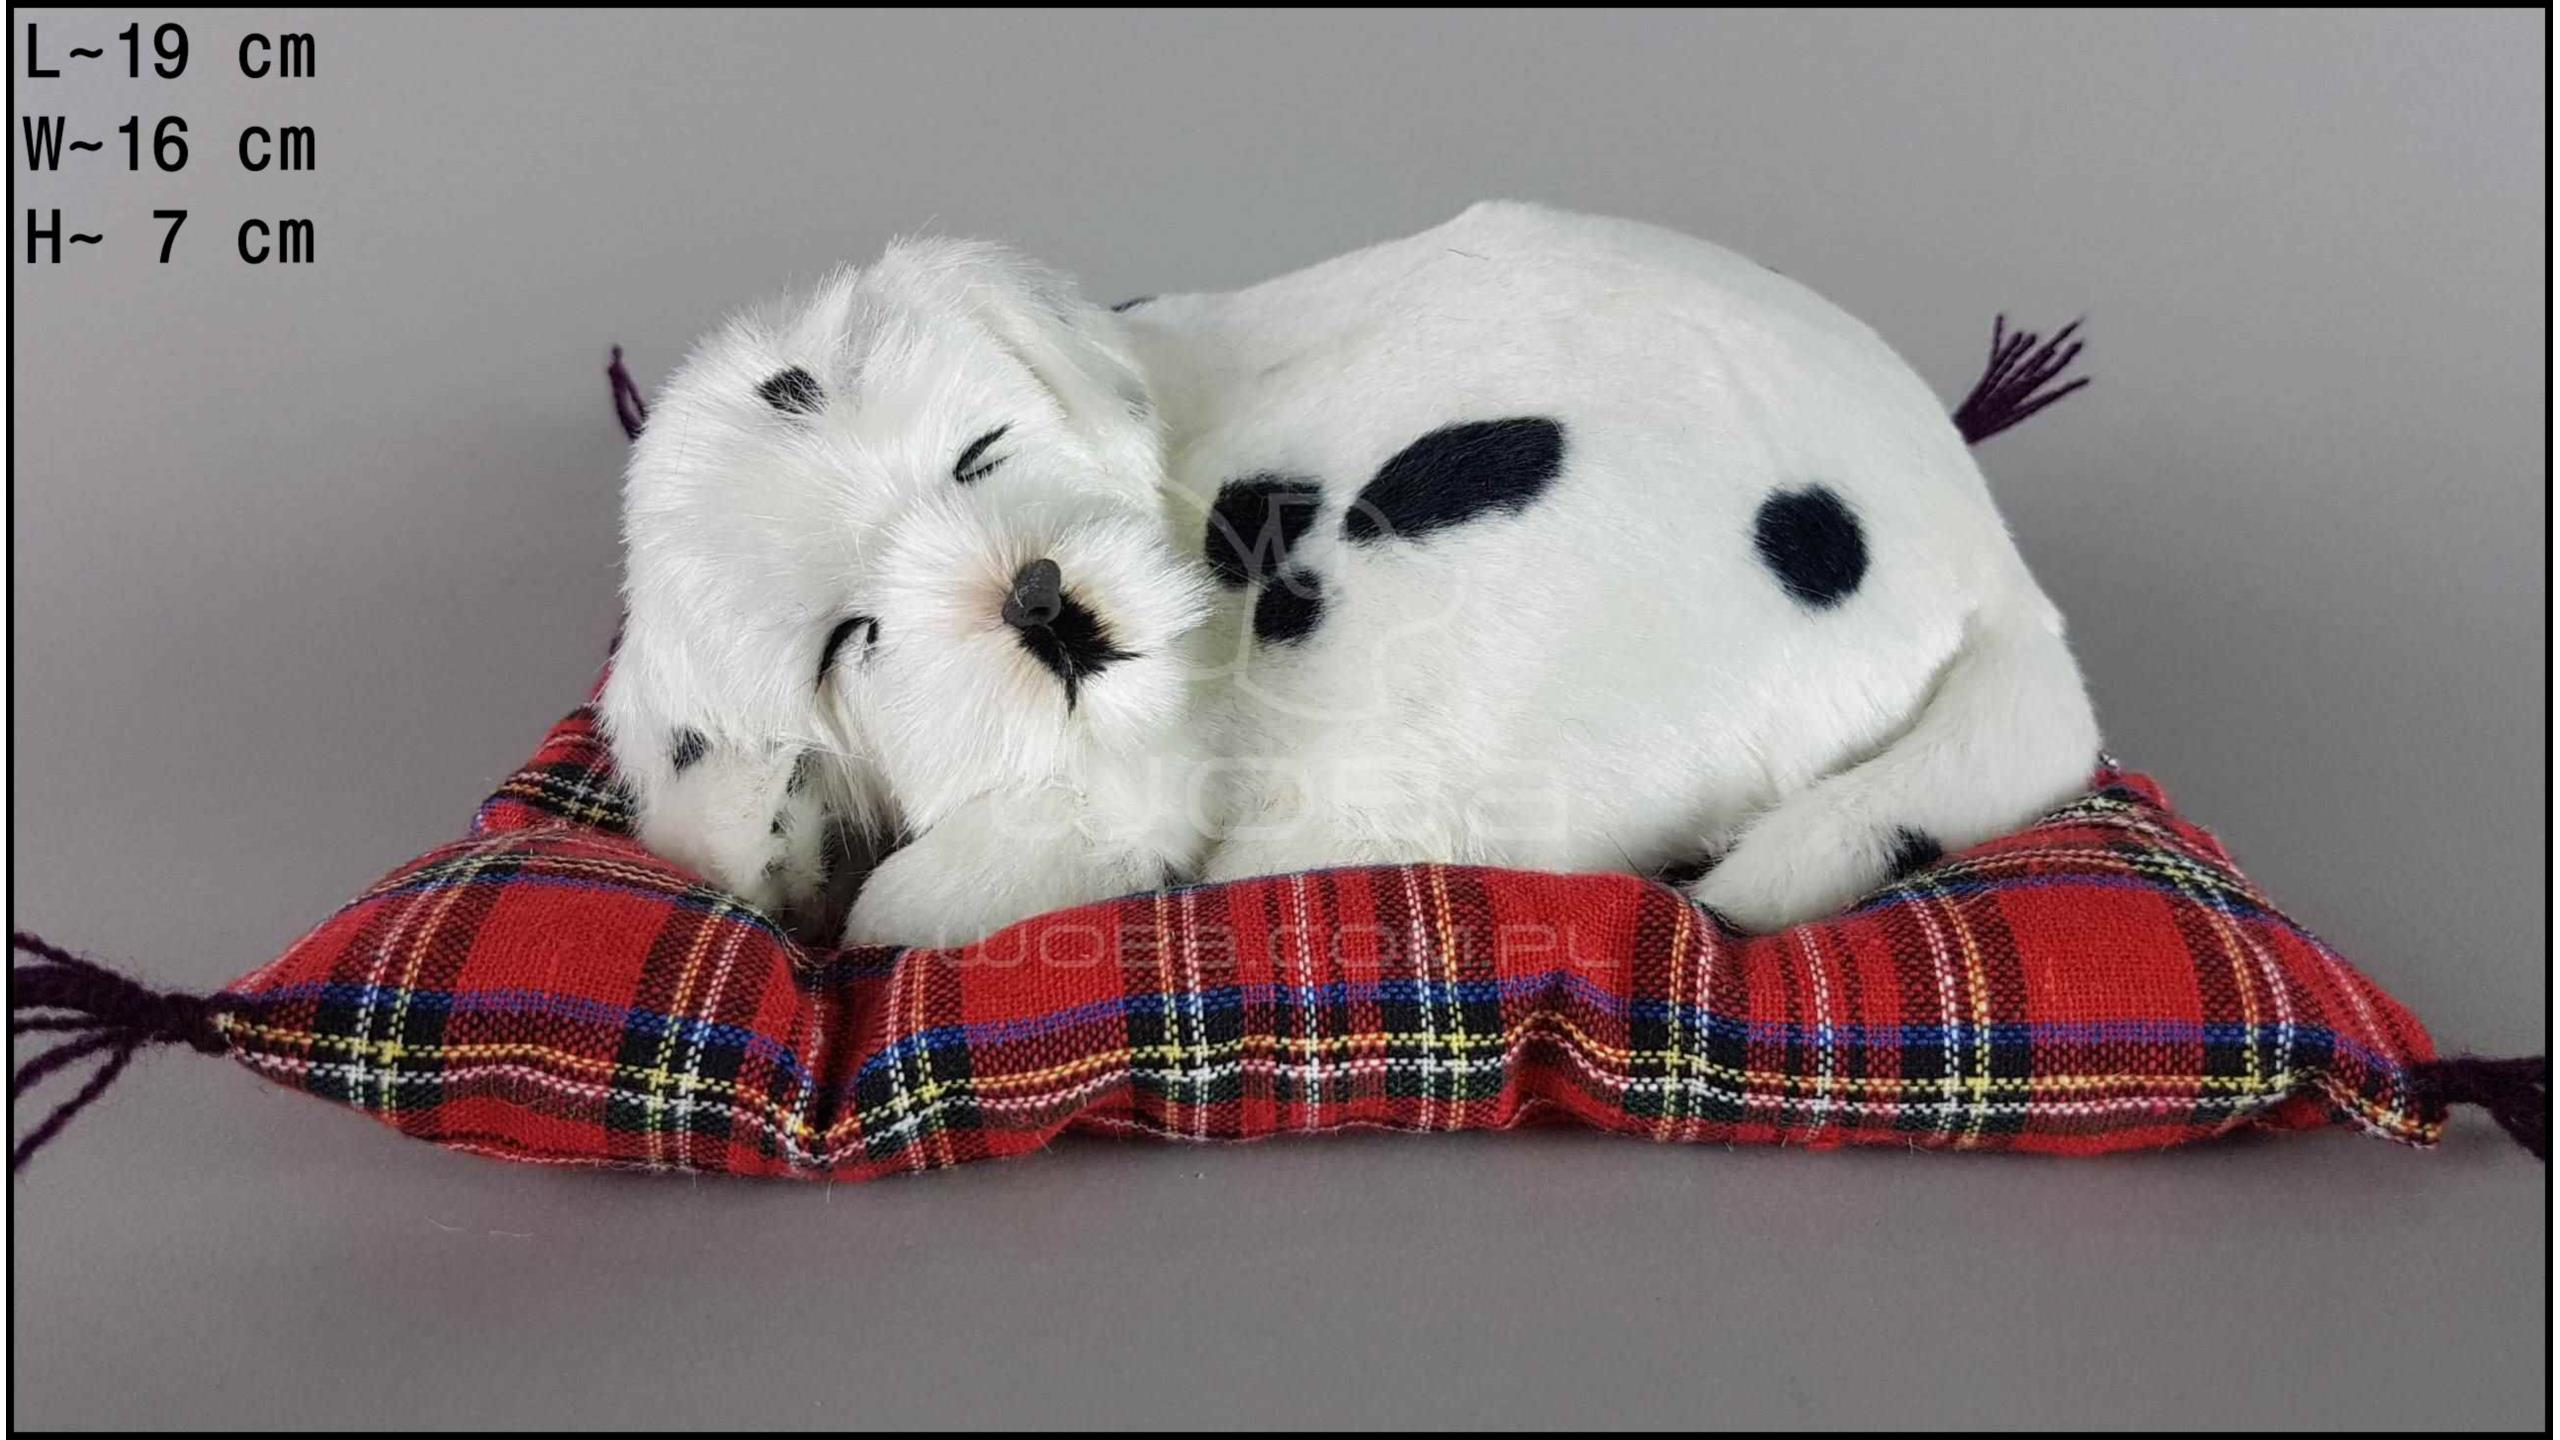 Dog Dalmatian on a pillow - Size S